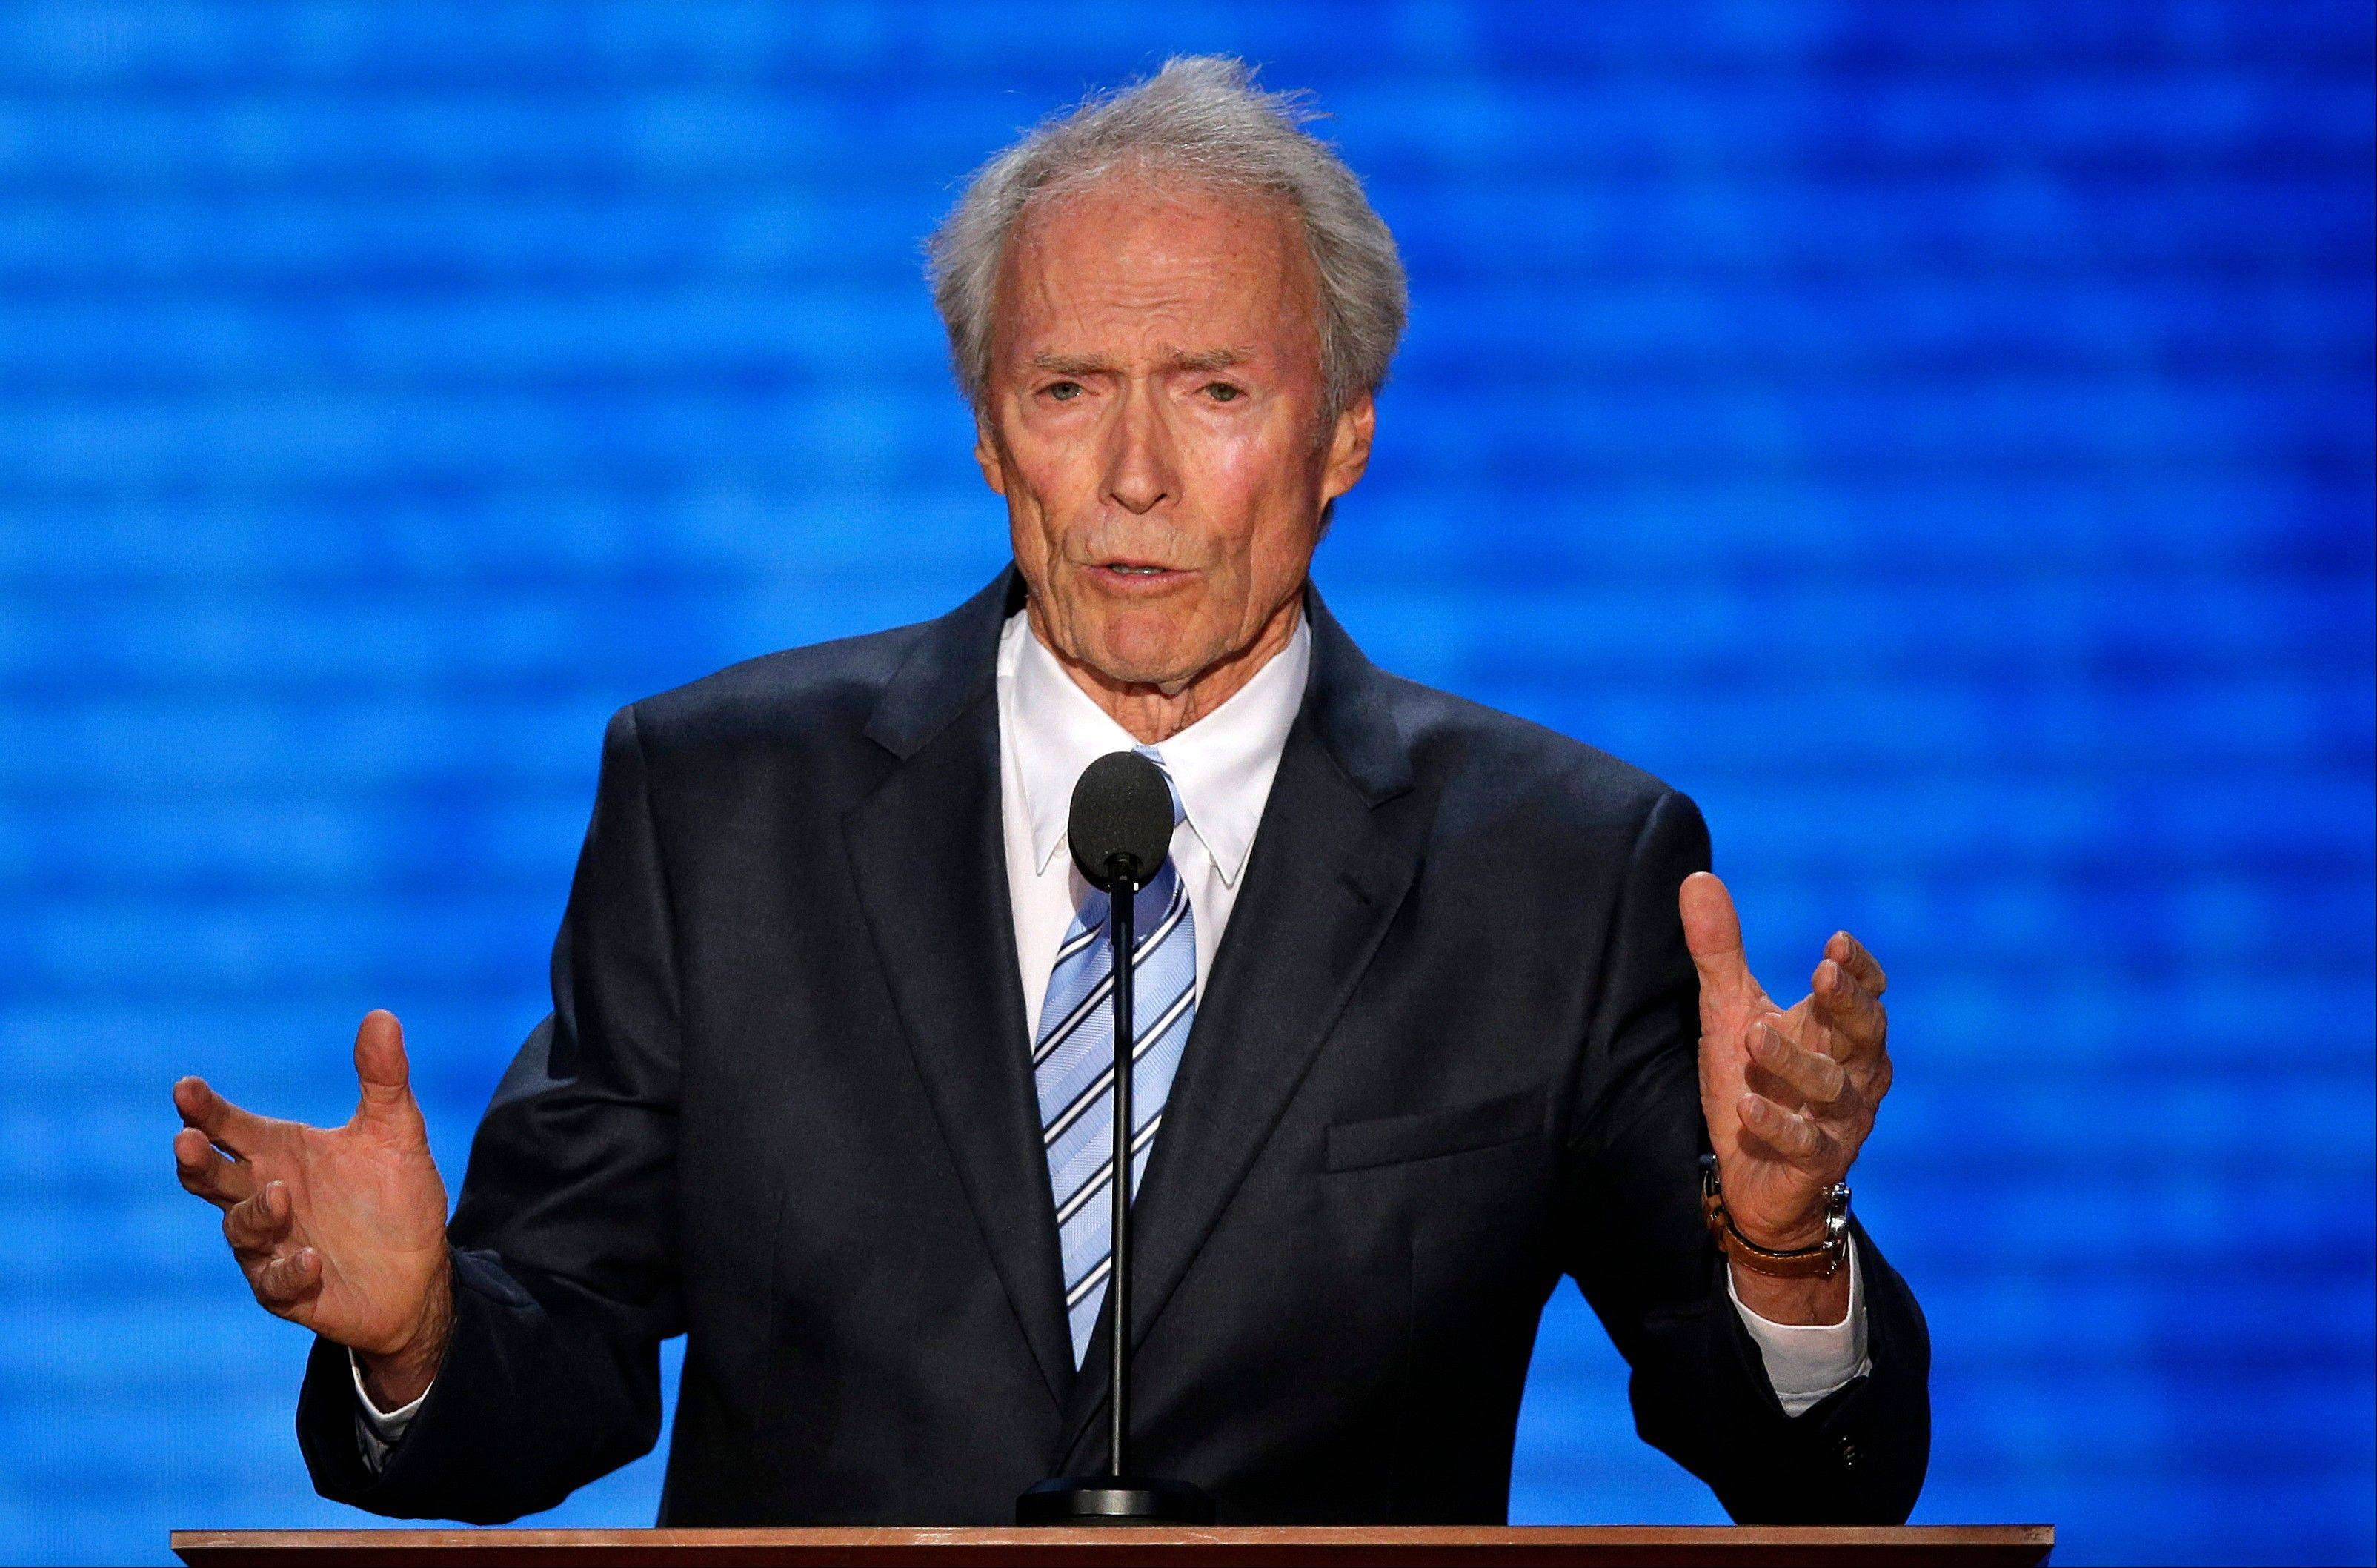 Actor Clint Eastwood addresses the Republican National Convention in Tampa, Fla., on Thursday.